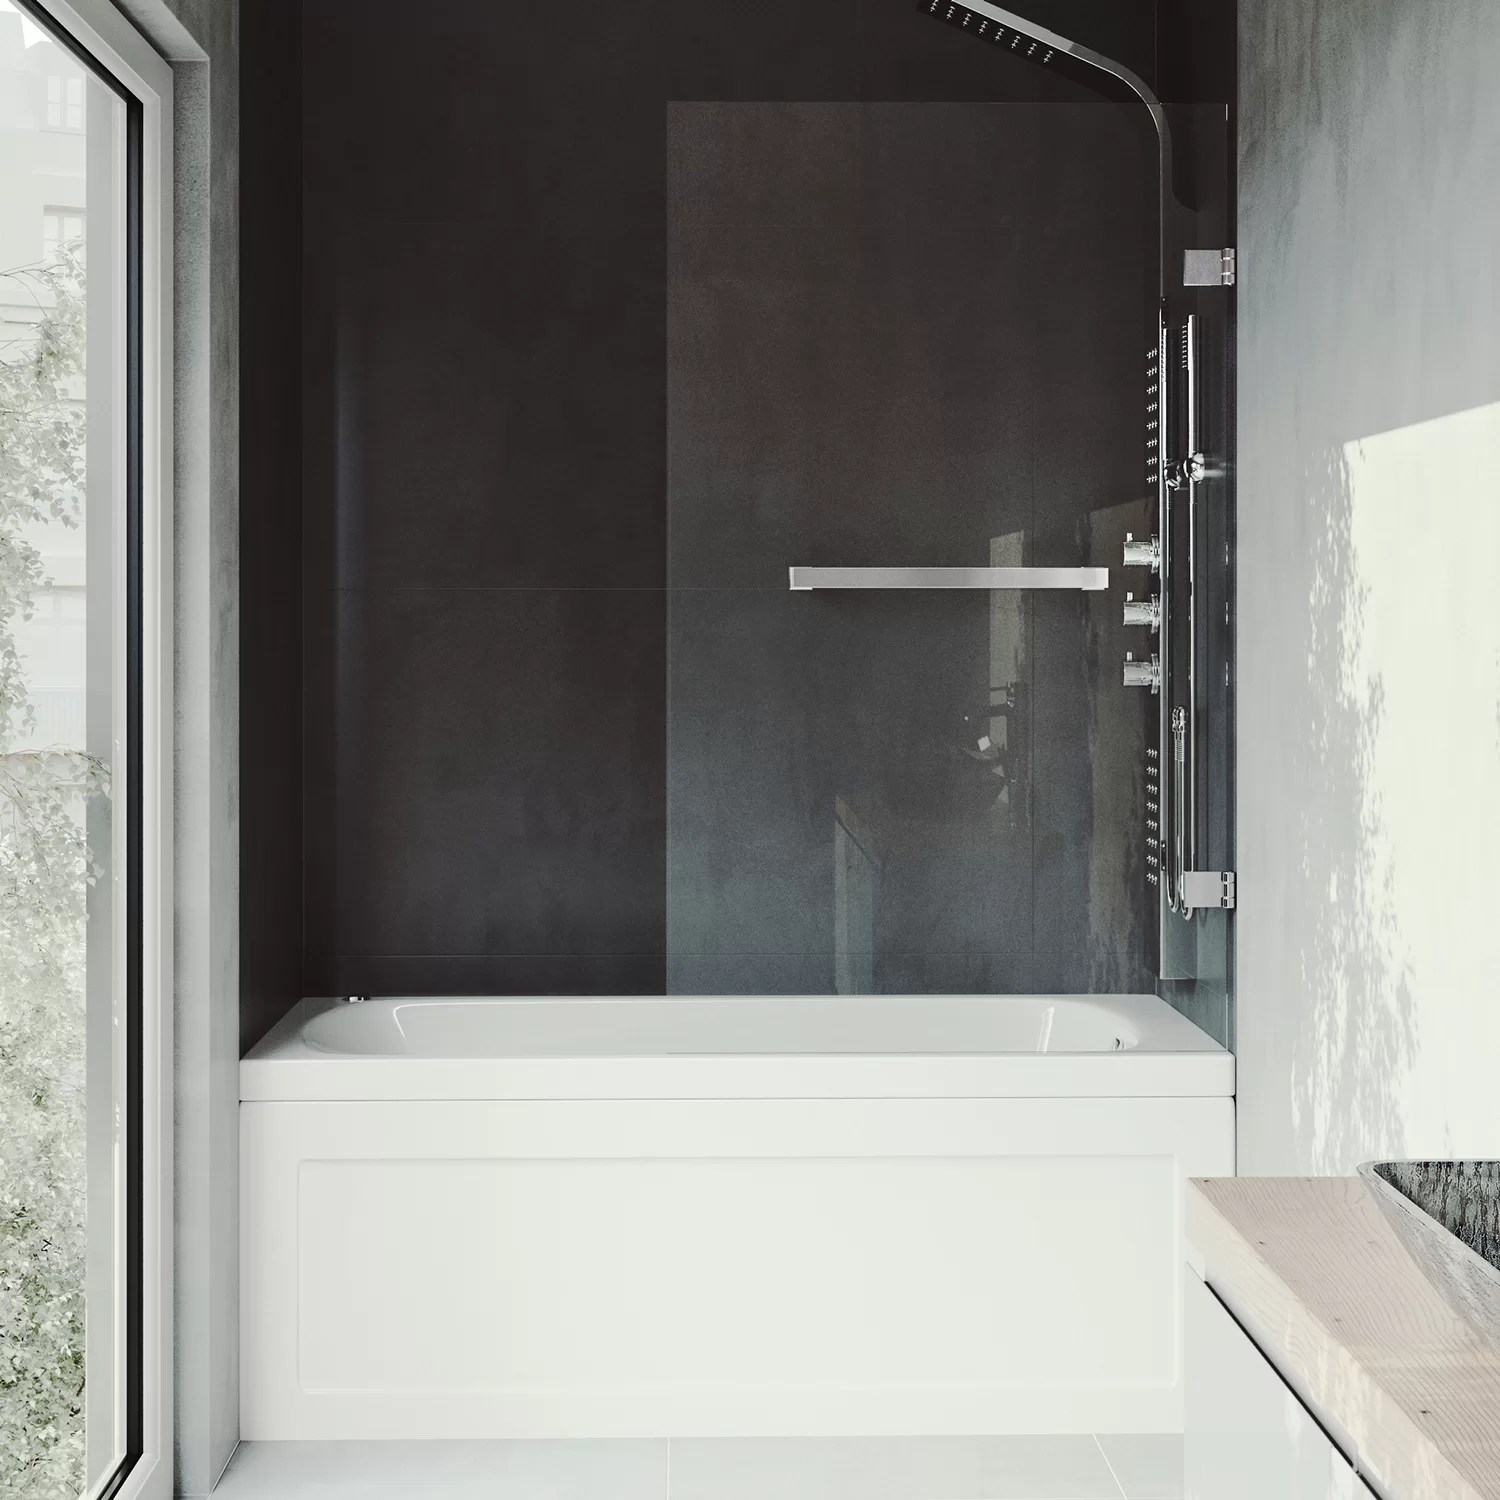 Rialto 34 X 58 Hinged Frameless Tub Door